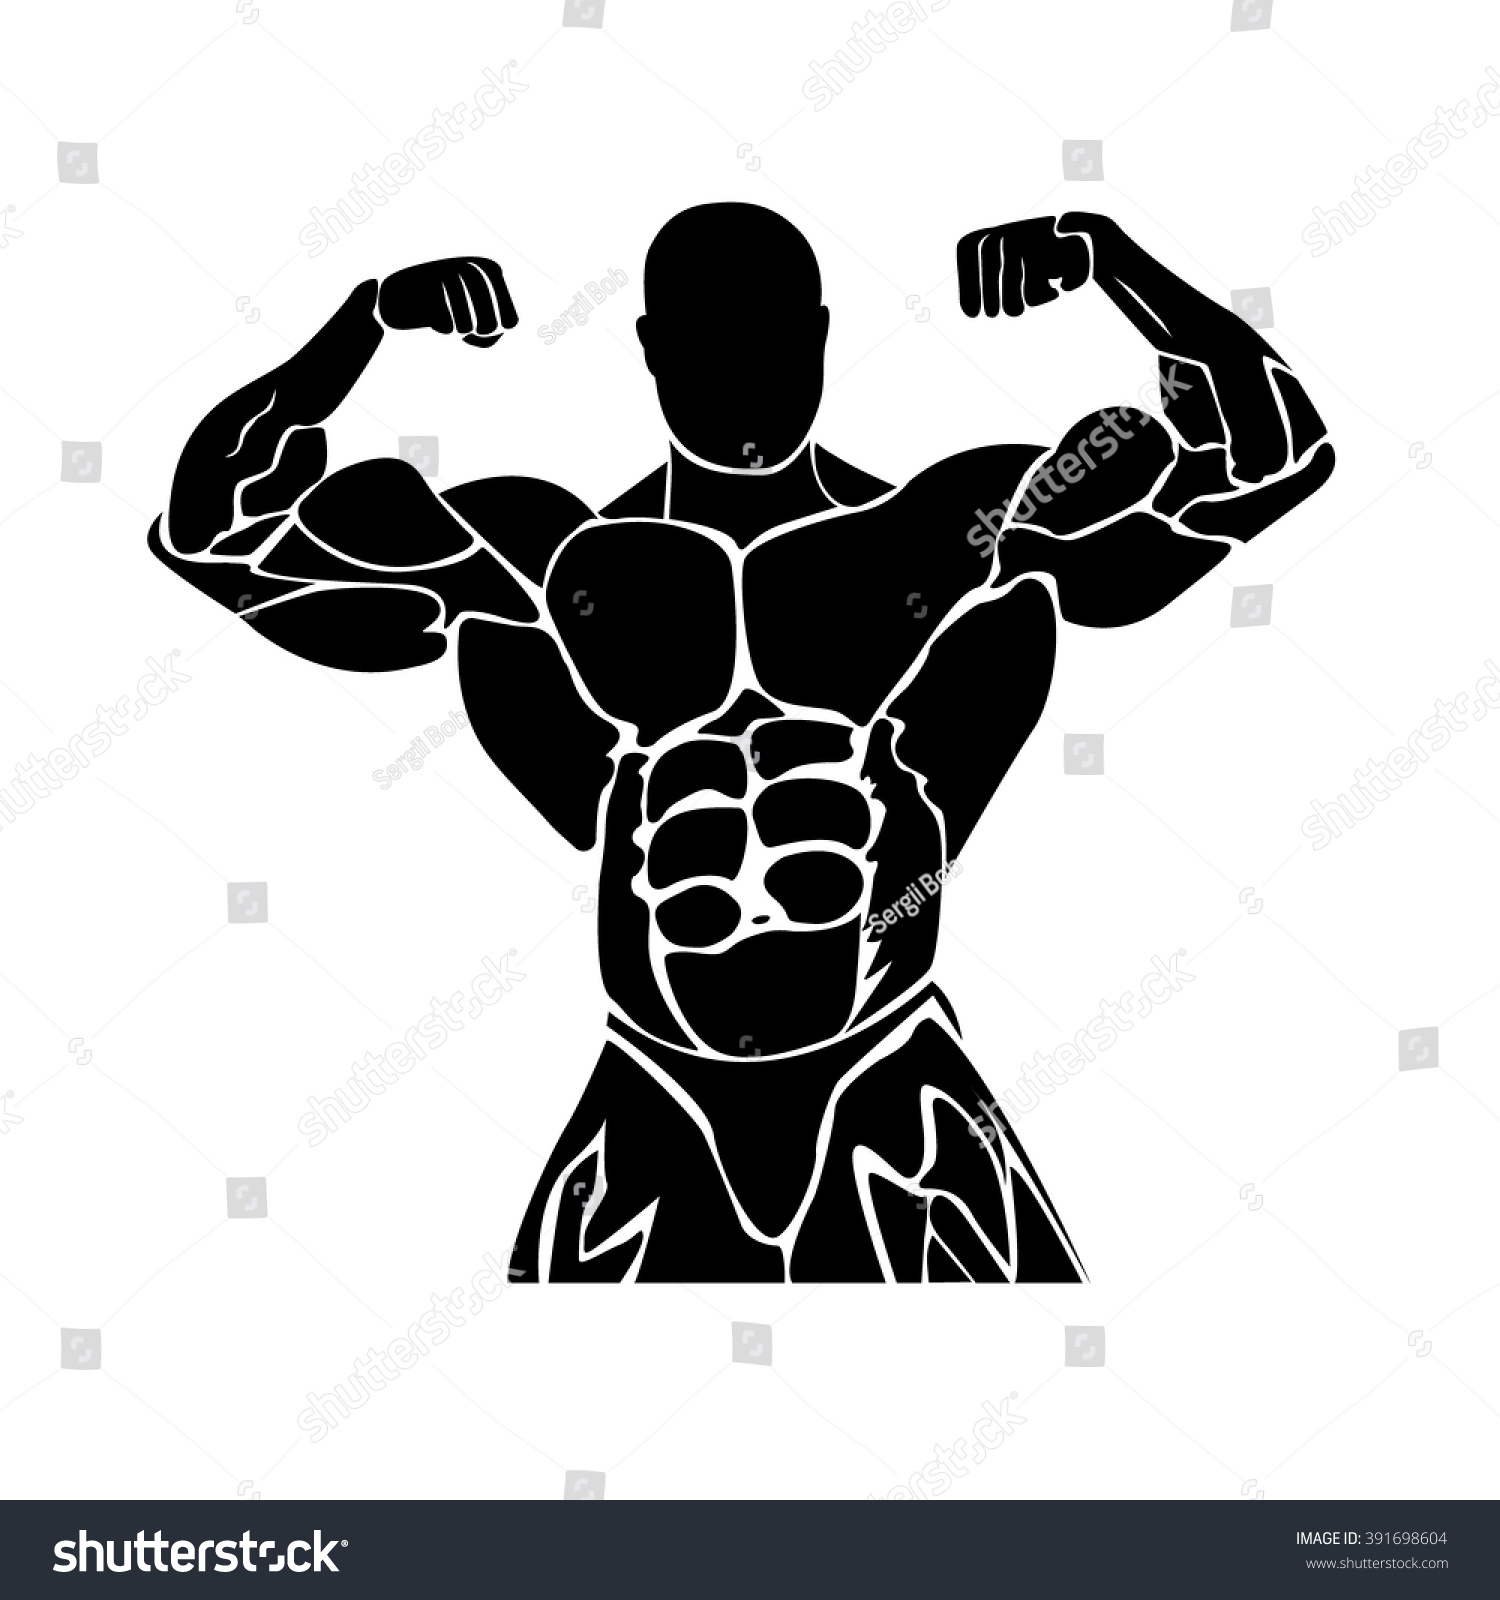 Bodybuilding Graphic Design Strongmanicon Power Lifting Stock ... for Bodybuilding Graphic Design  45hul